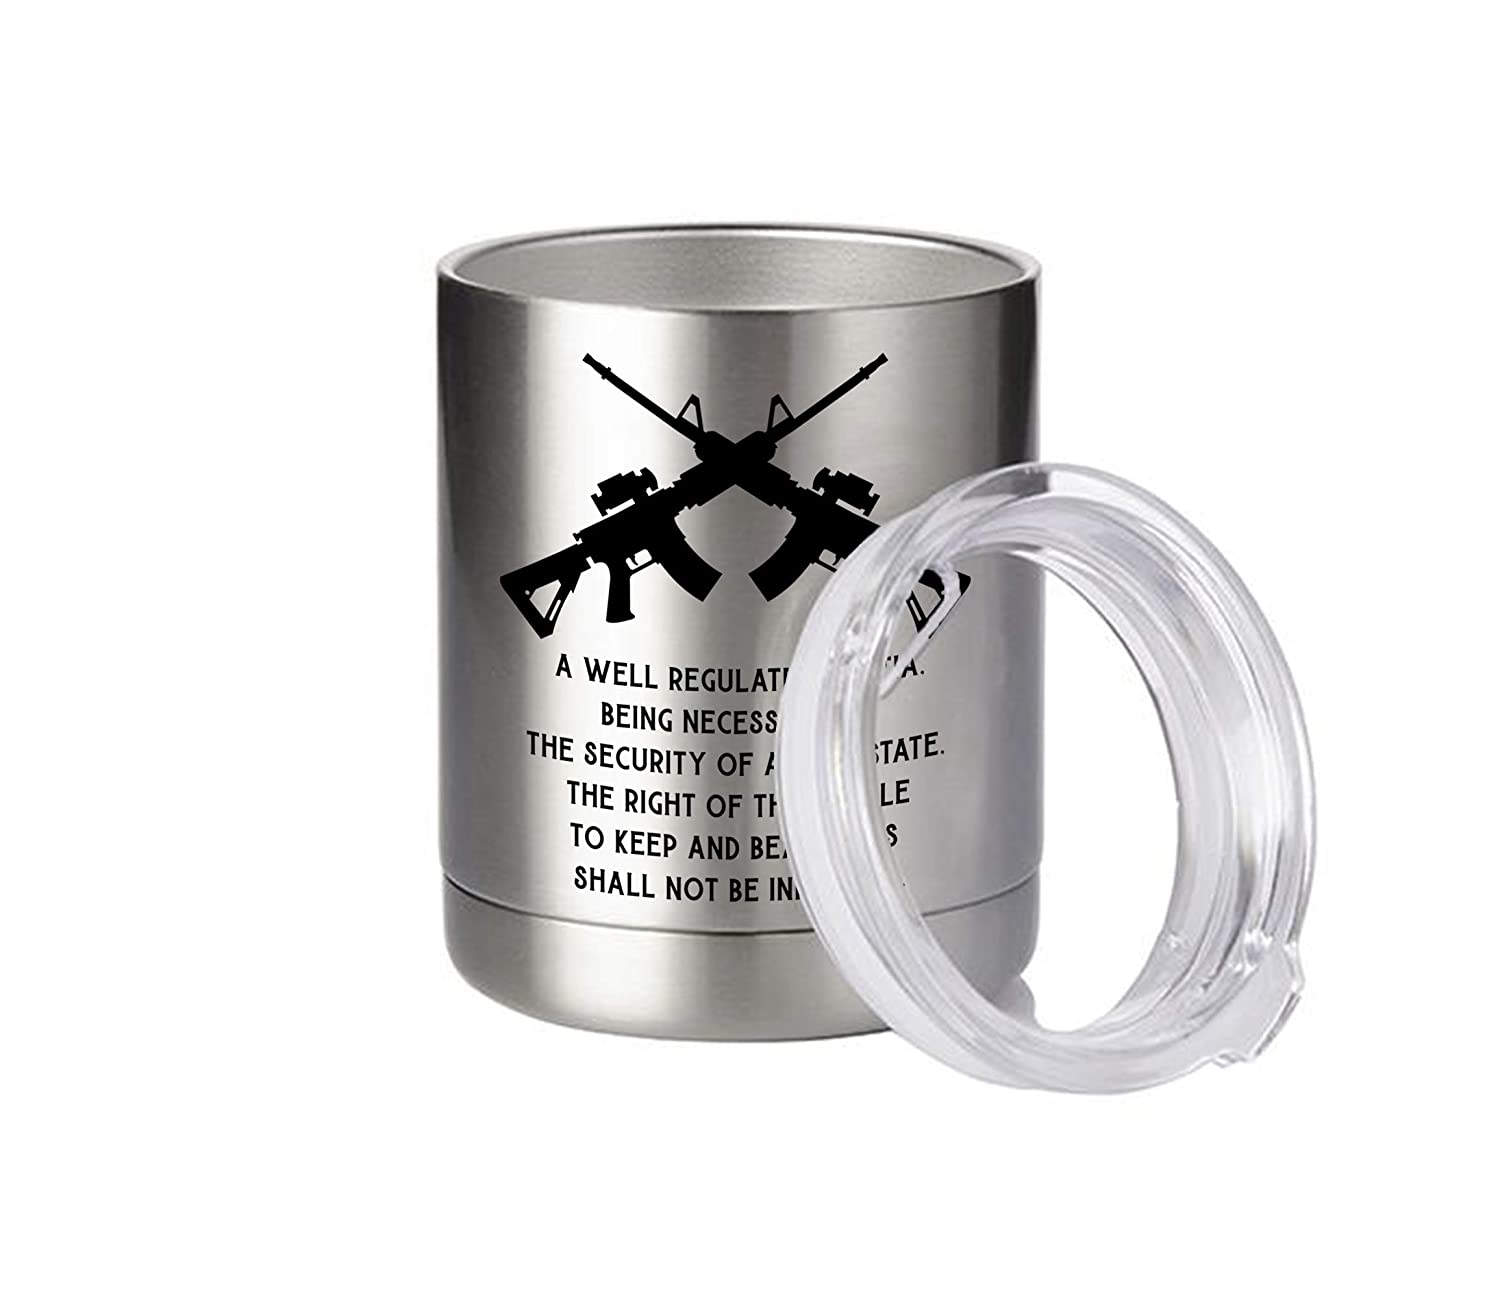 2nd Amendment Whiskey Stainless Steel Lowball Tumbler 10 oz with Lid Constitution Gift AR-15 Rifles